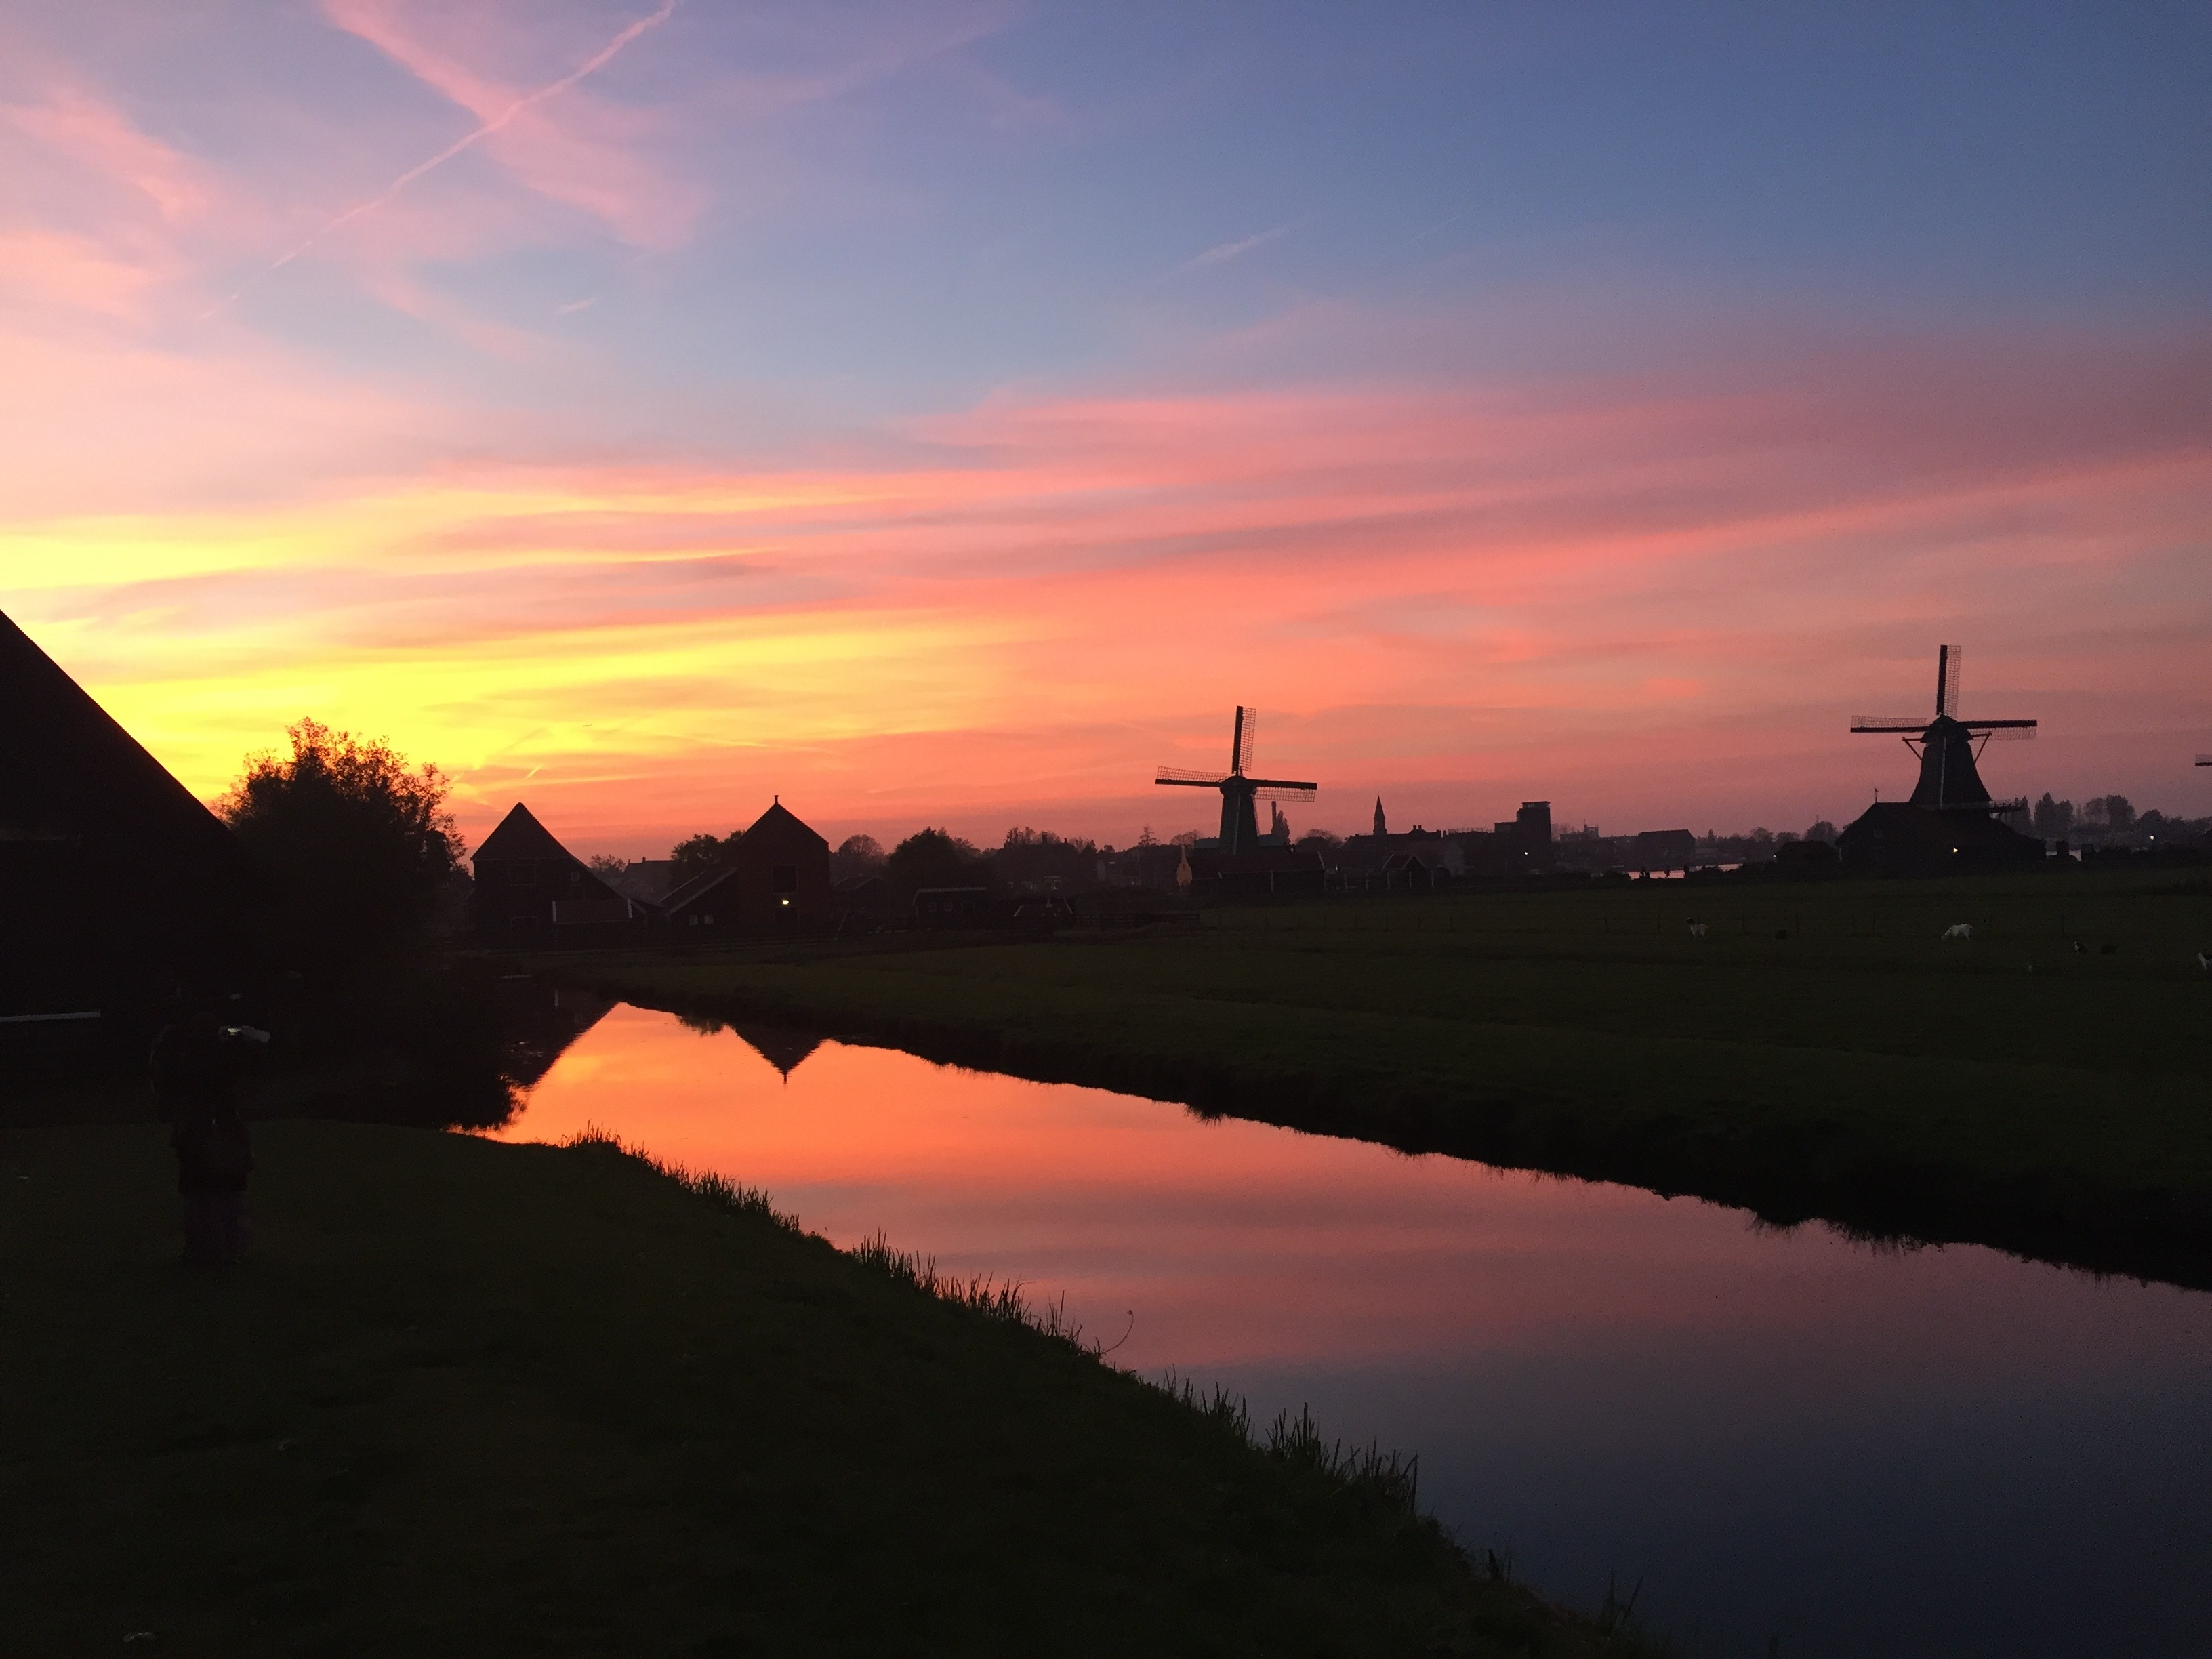 Sunset at Zaanse Schans